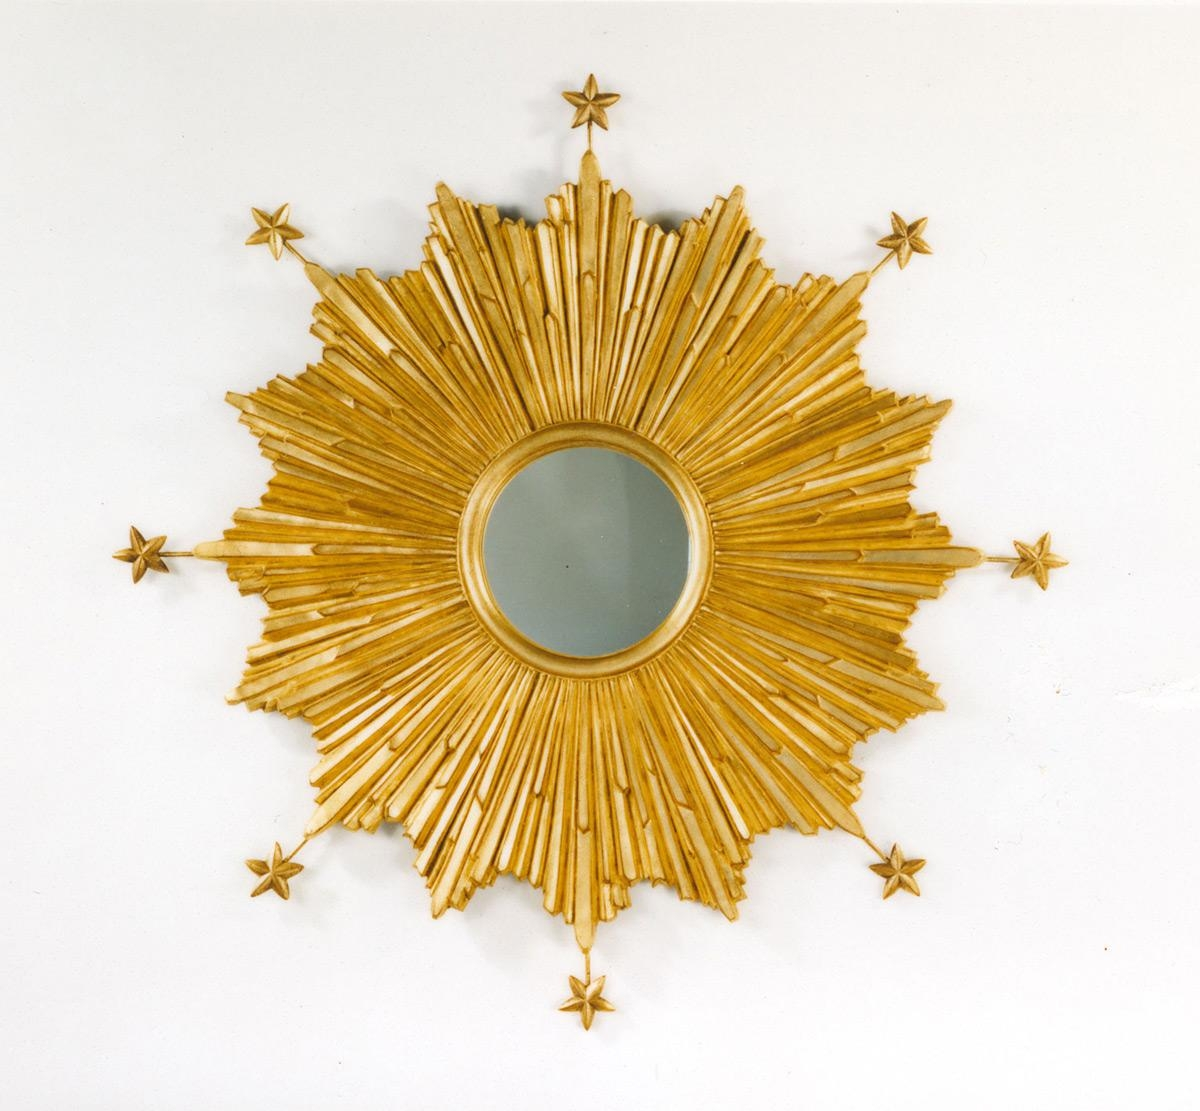 Starburst Mirror | Carvers' Guild Within Starburst Convex Mirror (Image 18 of 20)